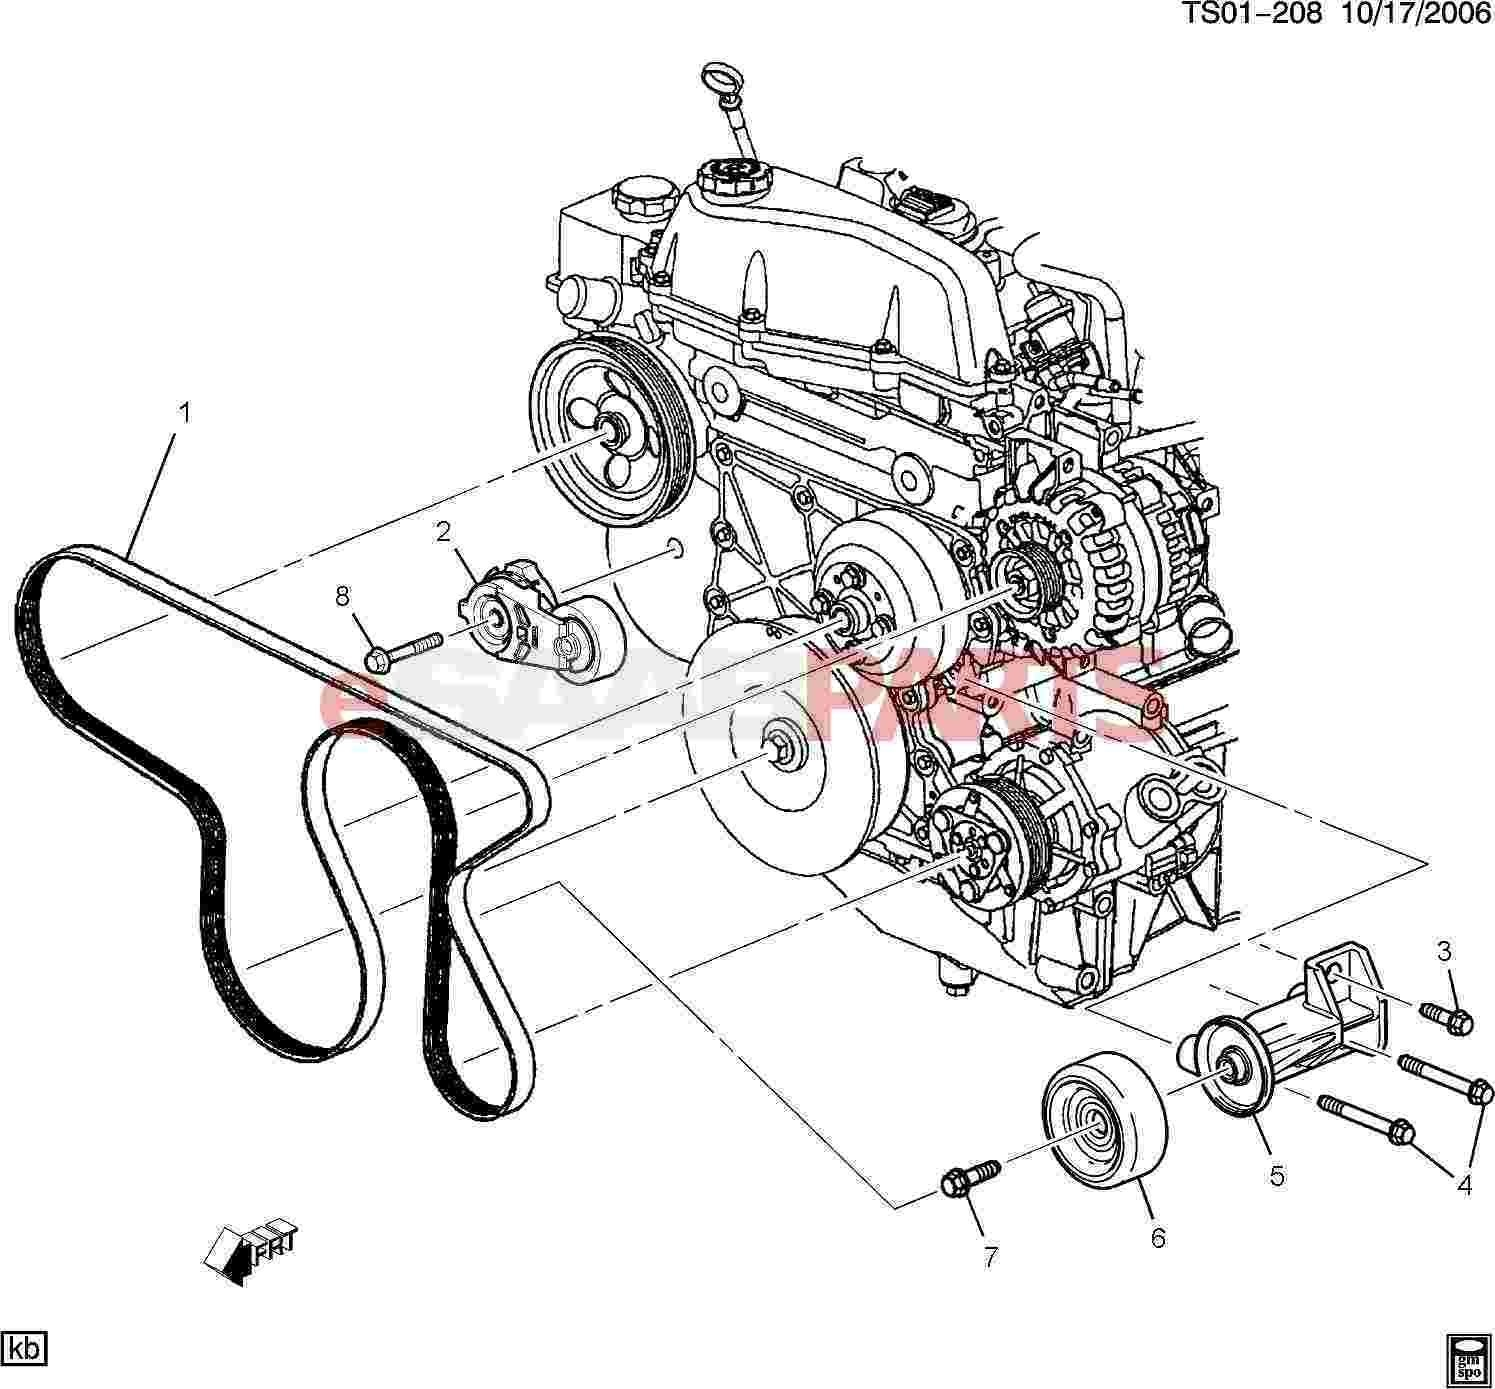 Auto Parts Diagram toyota 2001 toyota Ta A Parts Diagram ] Saab Bolt Hfh M10x1 5—35 32thd 22 Of Auto Parts Diagram toyota toyota Parts Diagram – Auto Parts Diagram Manual ] Saab Plug M16x1 5